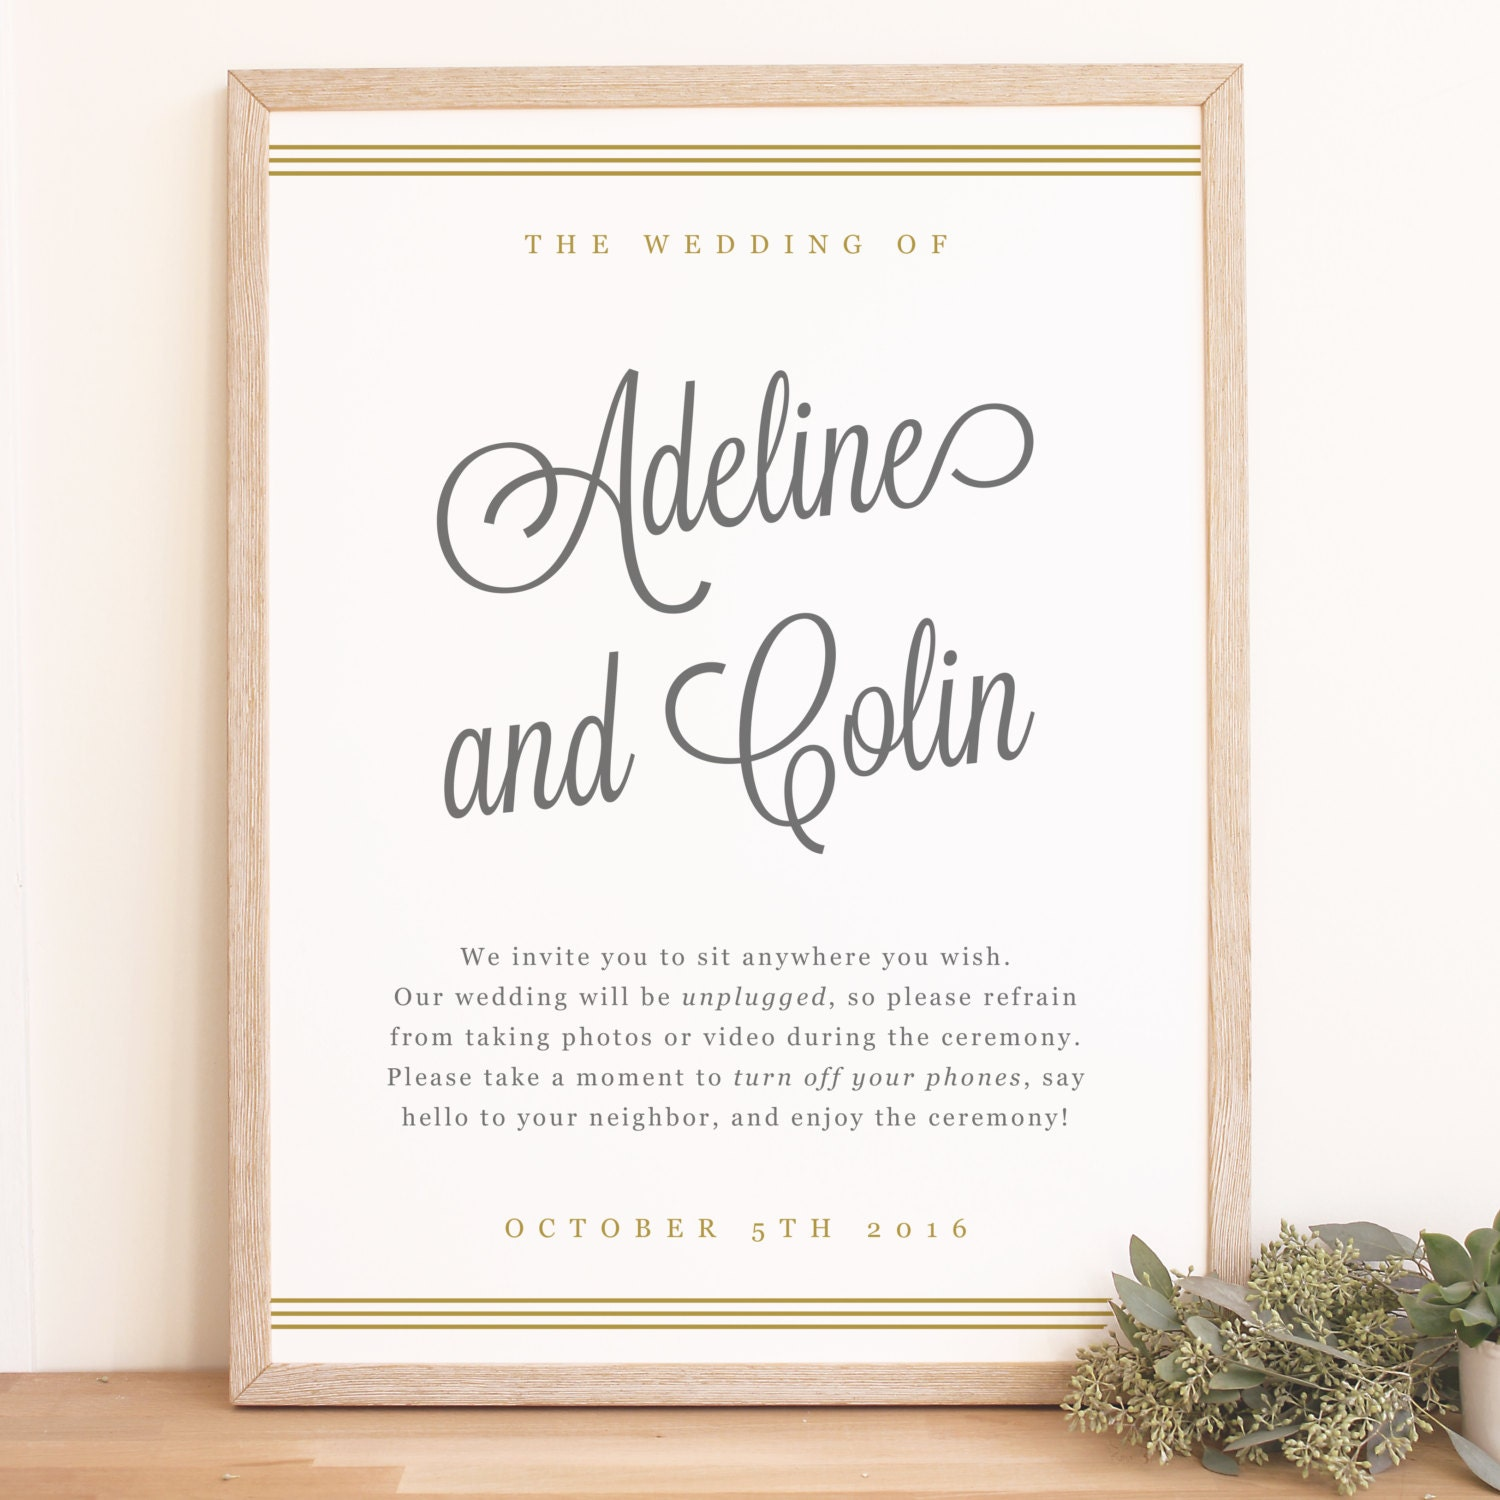 printable custom wedding welcome sign template gold script word or pages mac or pc large. Black Bedroom Furniture Sets. Home Design Ideas